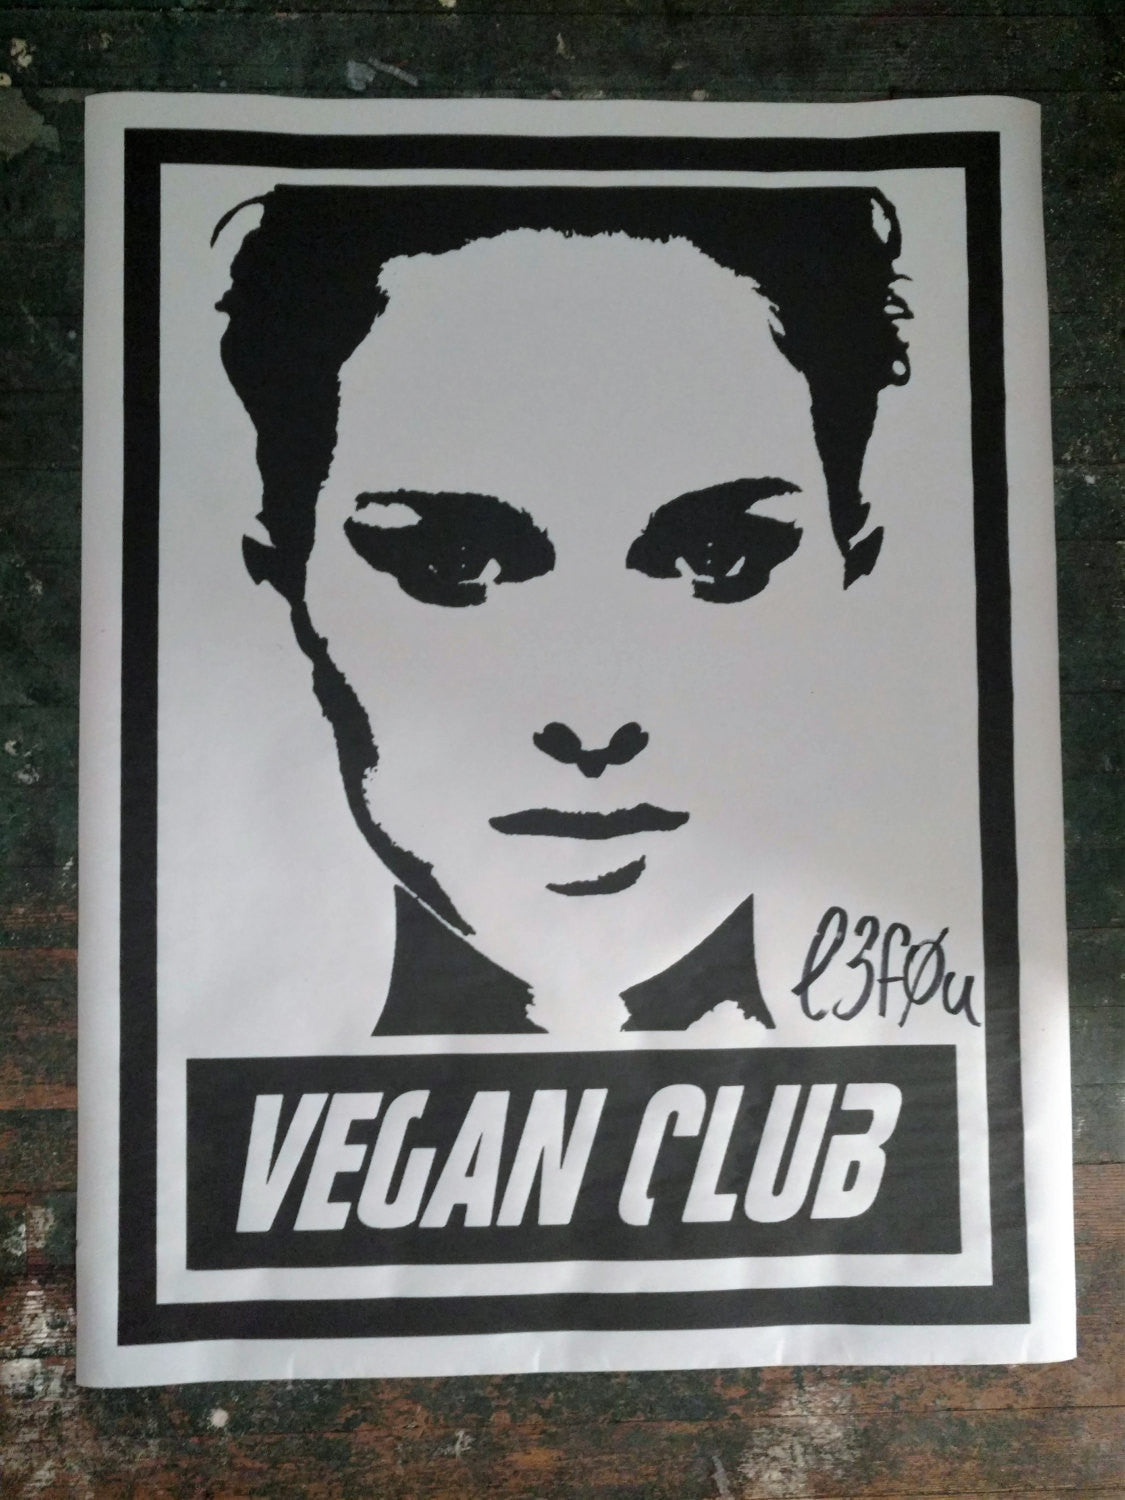 Street Art NewsPrint Poster Vegan Club Natalie Portman Signed L3f0u